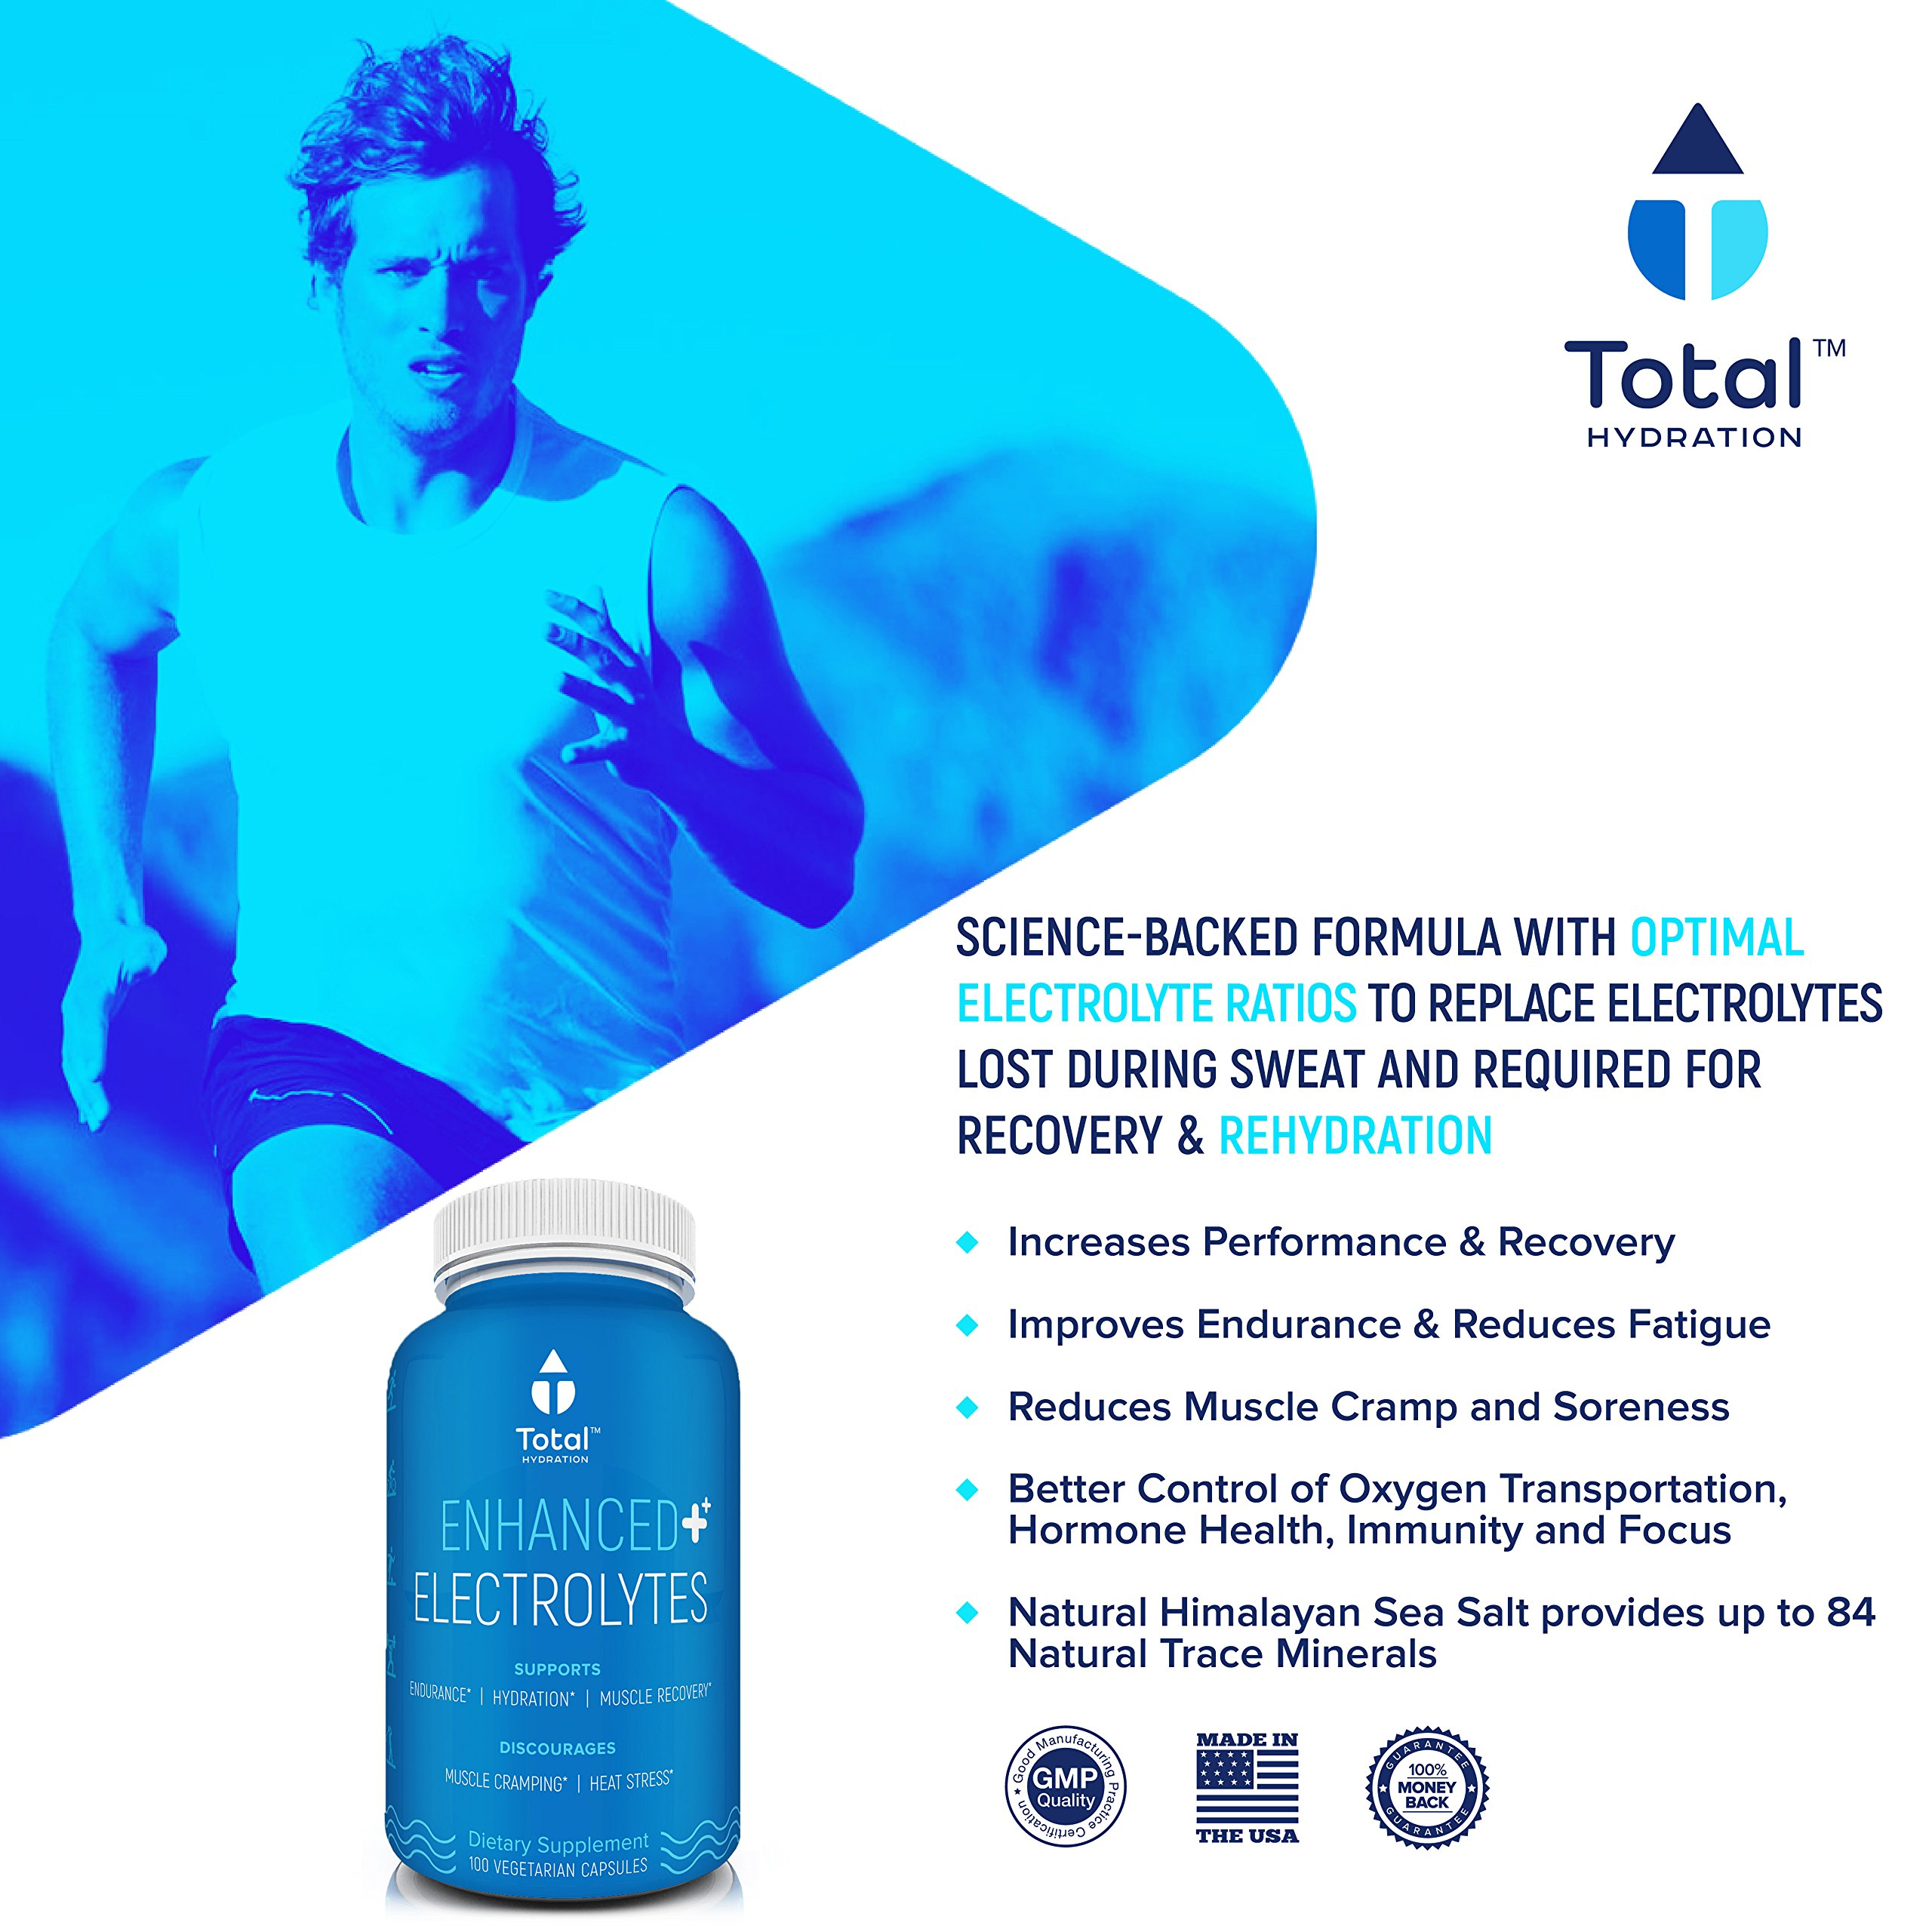 TOTAL HYDRATION Natural Himalayan Salt Electrolyte Replacement Capsules - #1 Ranked - Recovery from Endurance Sports, Heat, or Dehydration - Cramp reduction, Restores energy - 100 pills, USA Made by Total Hydration (Image #4)